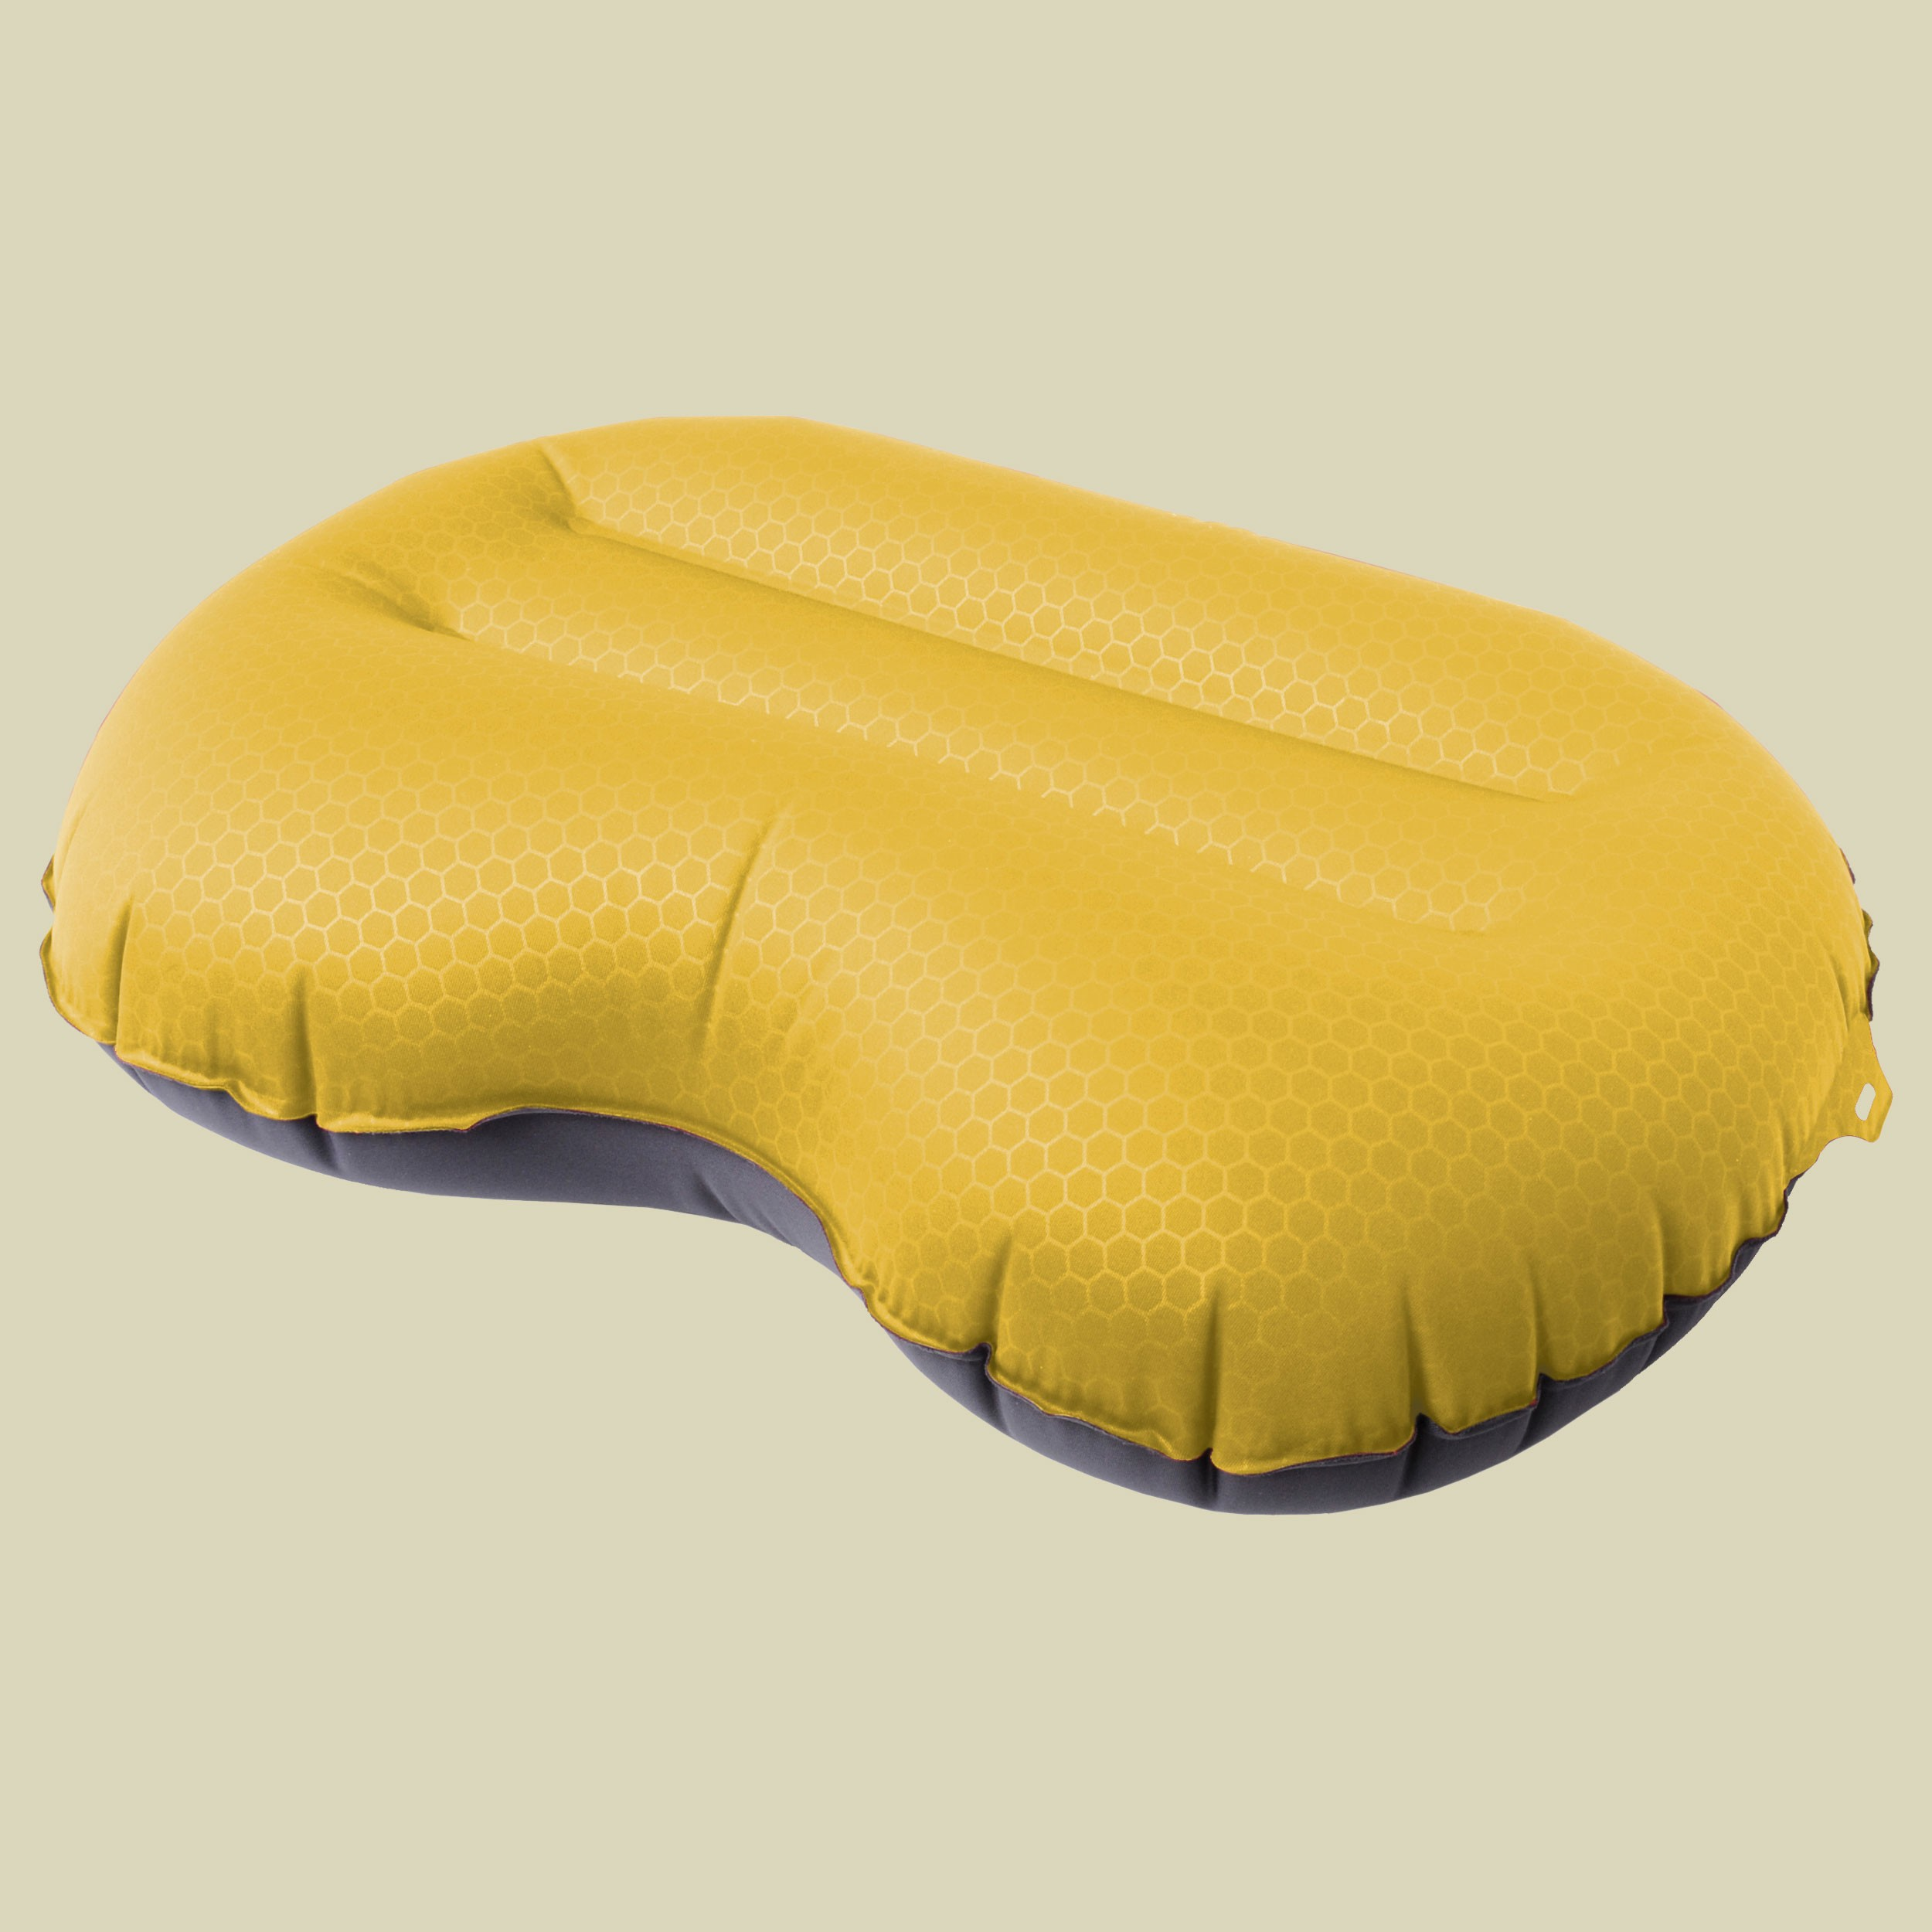 exped_12_AirPillow_UL_L_gelb_fallback.jpg